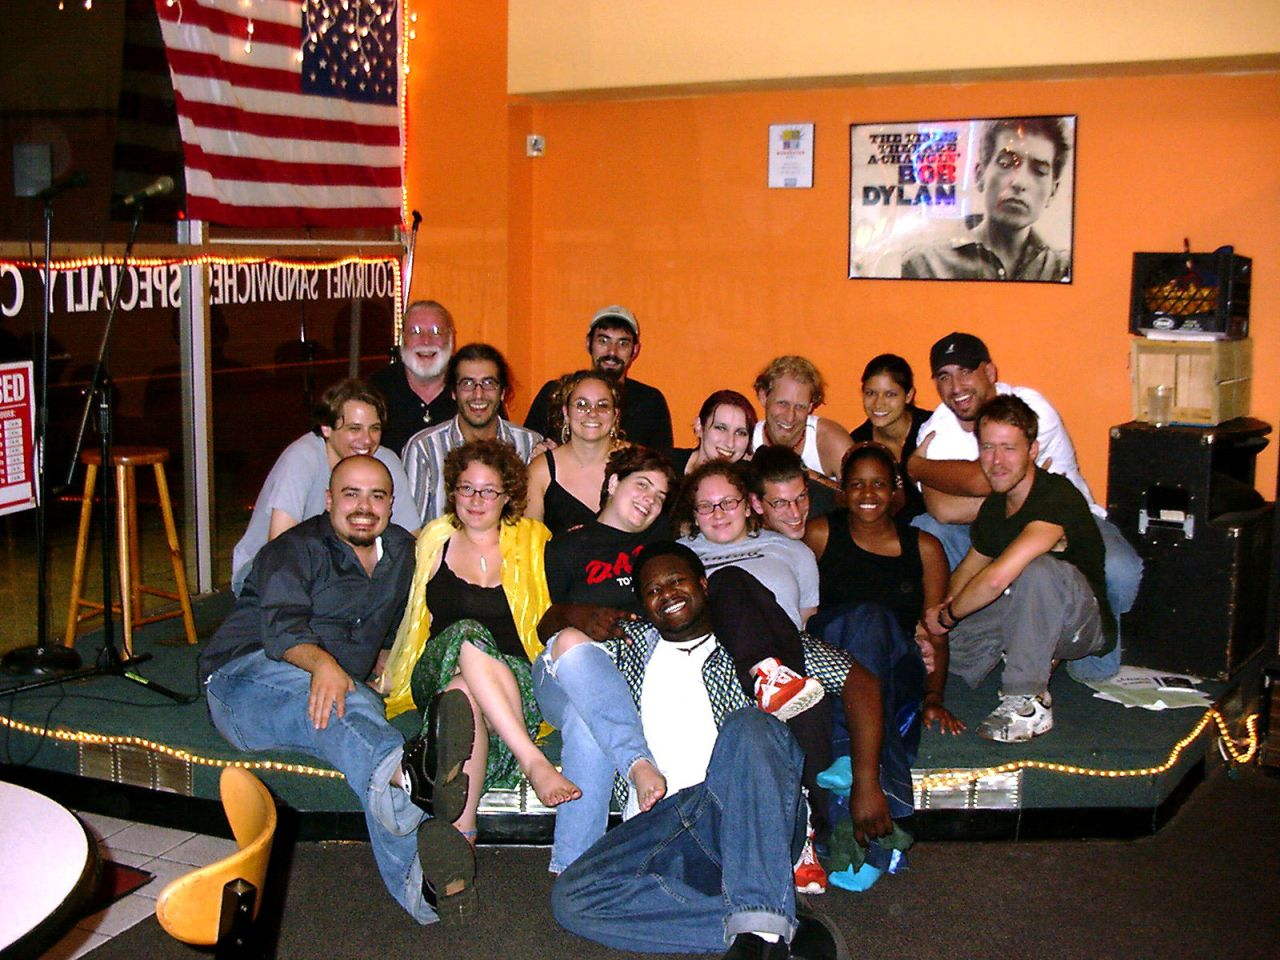 a group photo 17 people seated on a stage inside a store